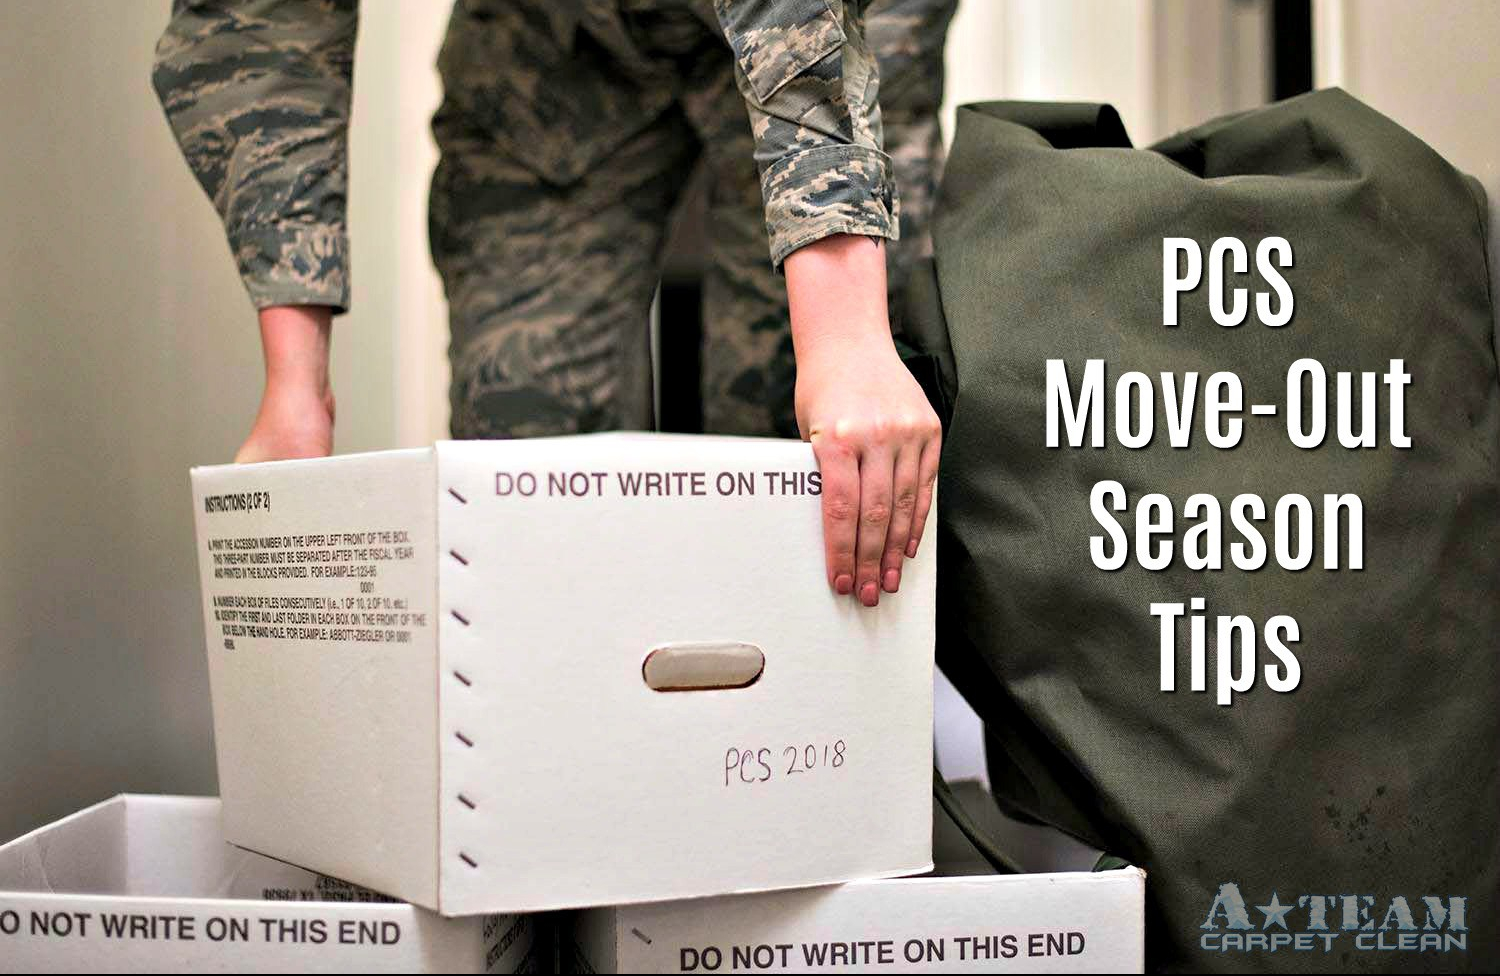 PCS Move-Out Season Tips